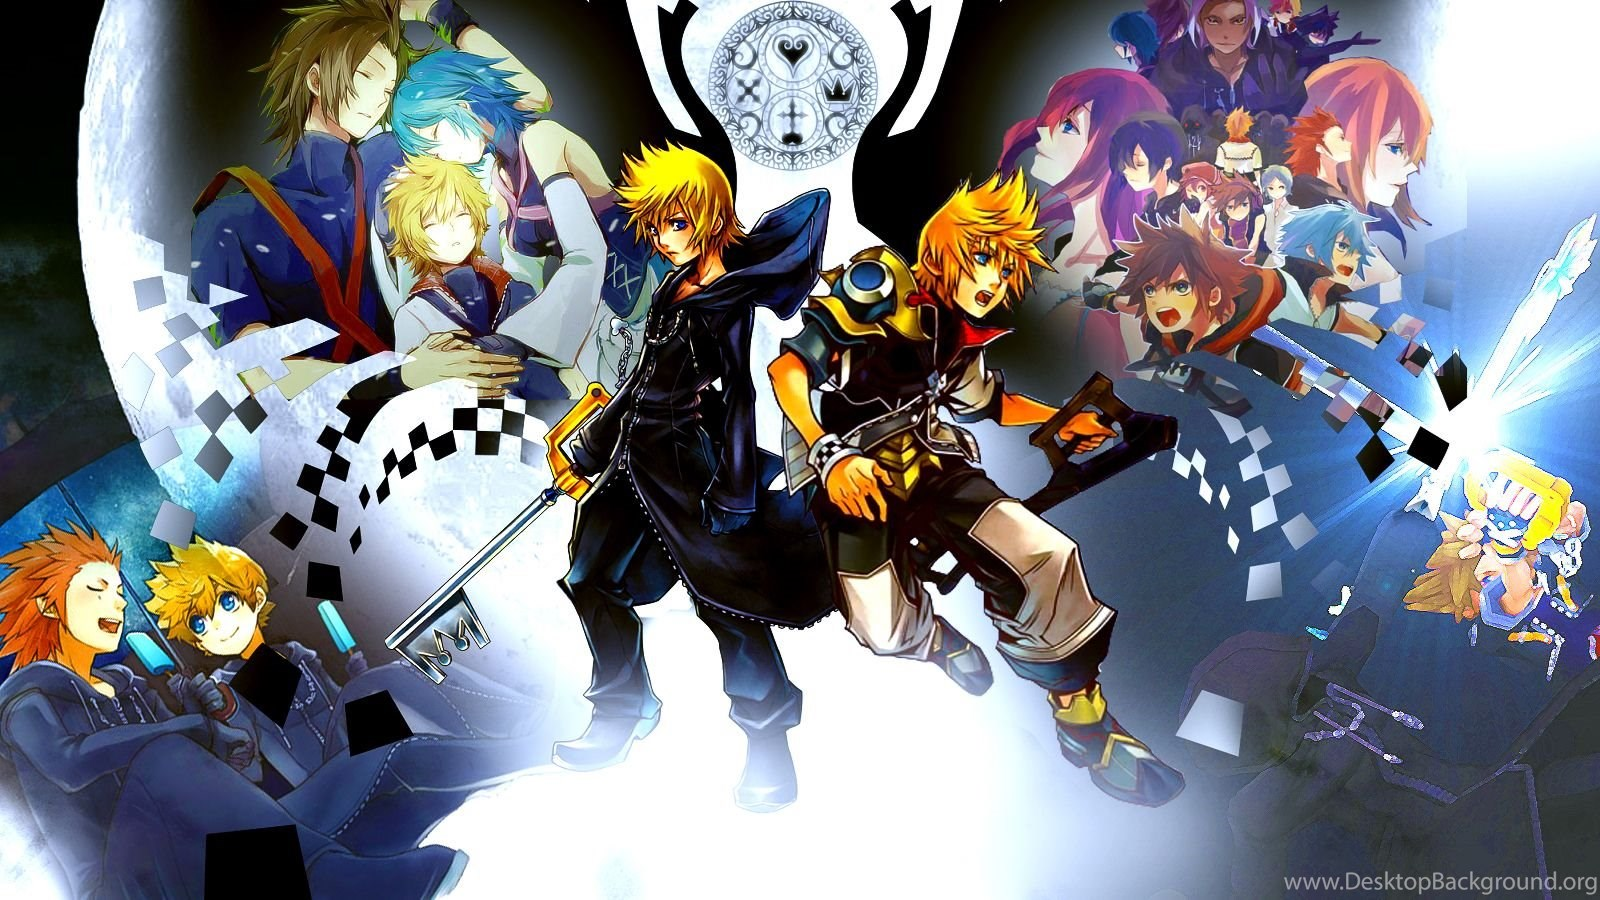 Gallery For Kingdom Hearts 3 Wallpapers Desktop Background